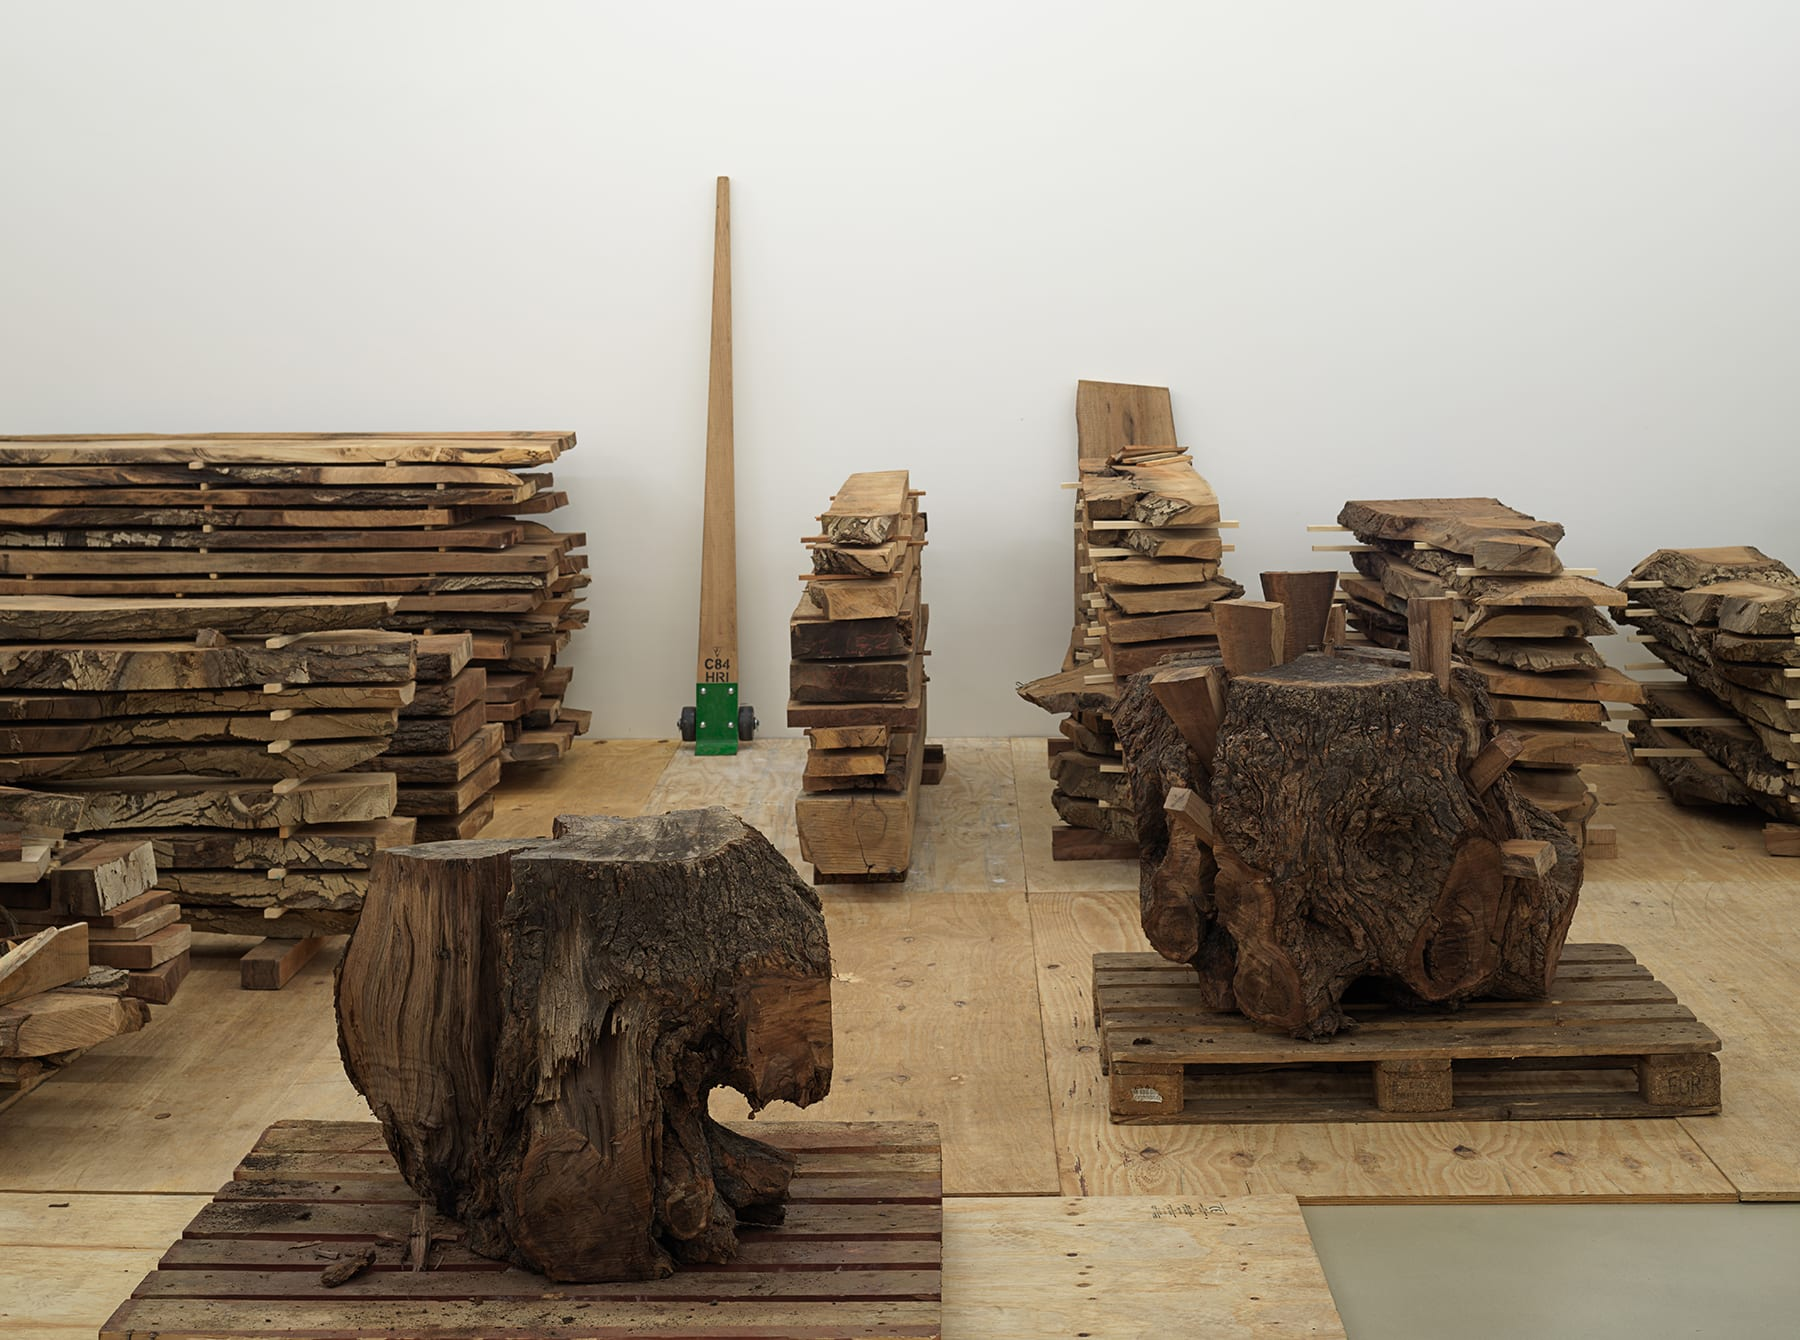 Gallery filled with stacked wood on crates and plywood